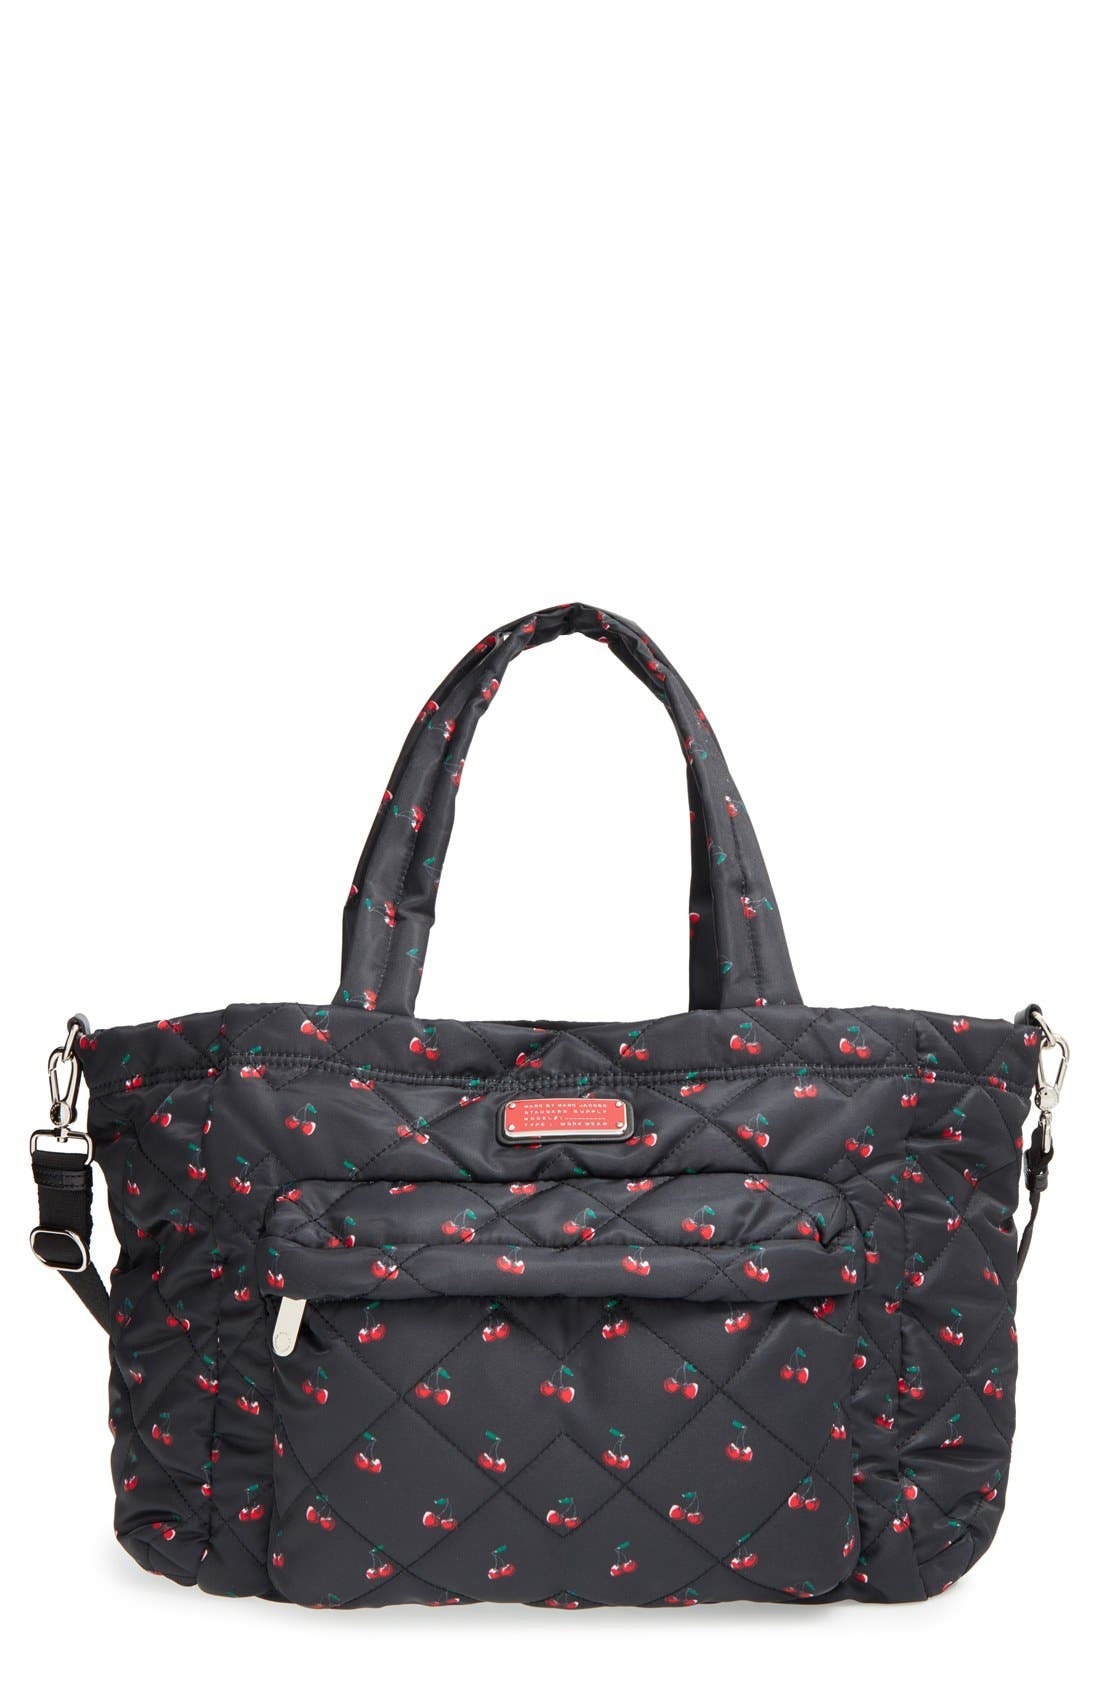 MARC JACOBS MARC BY MARC JACOBS 'Crosby - Elizababy' Quilted Fruit Print Diaper Bag, Main, color, 001